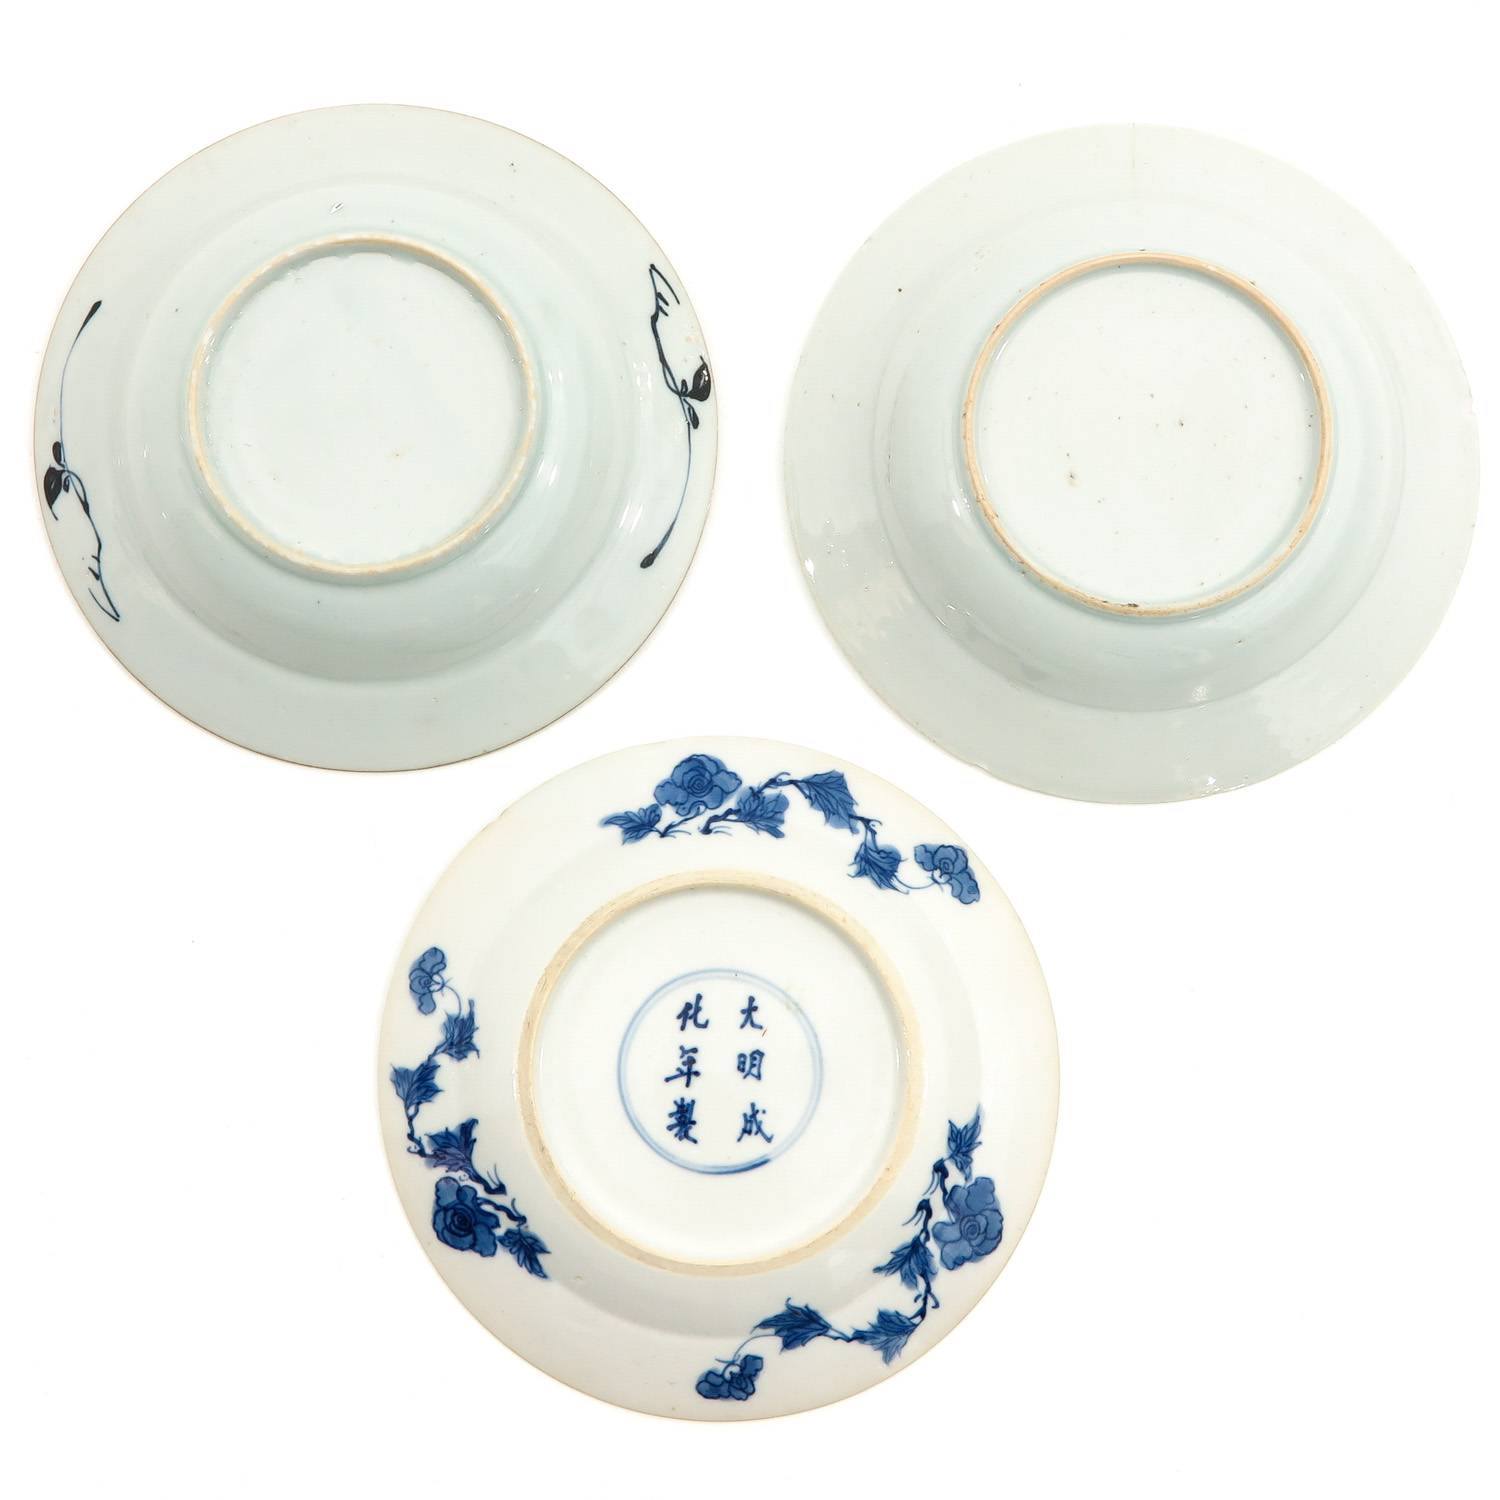 A Collection of 9 Blue and White Plates - Image 8 of 10